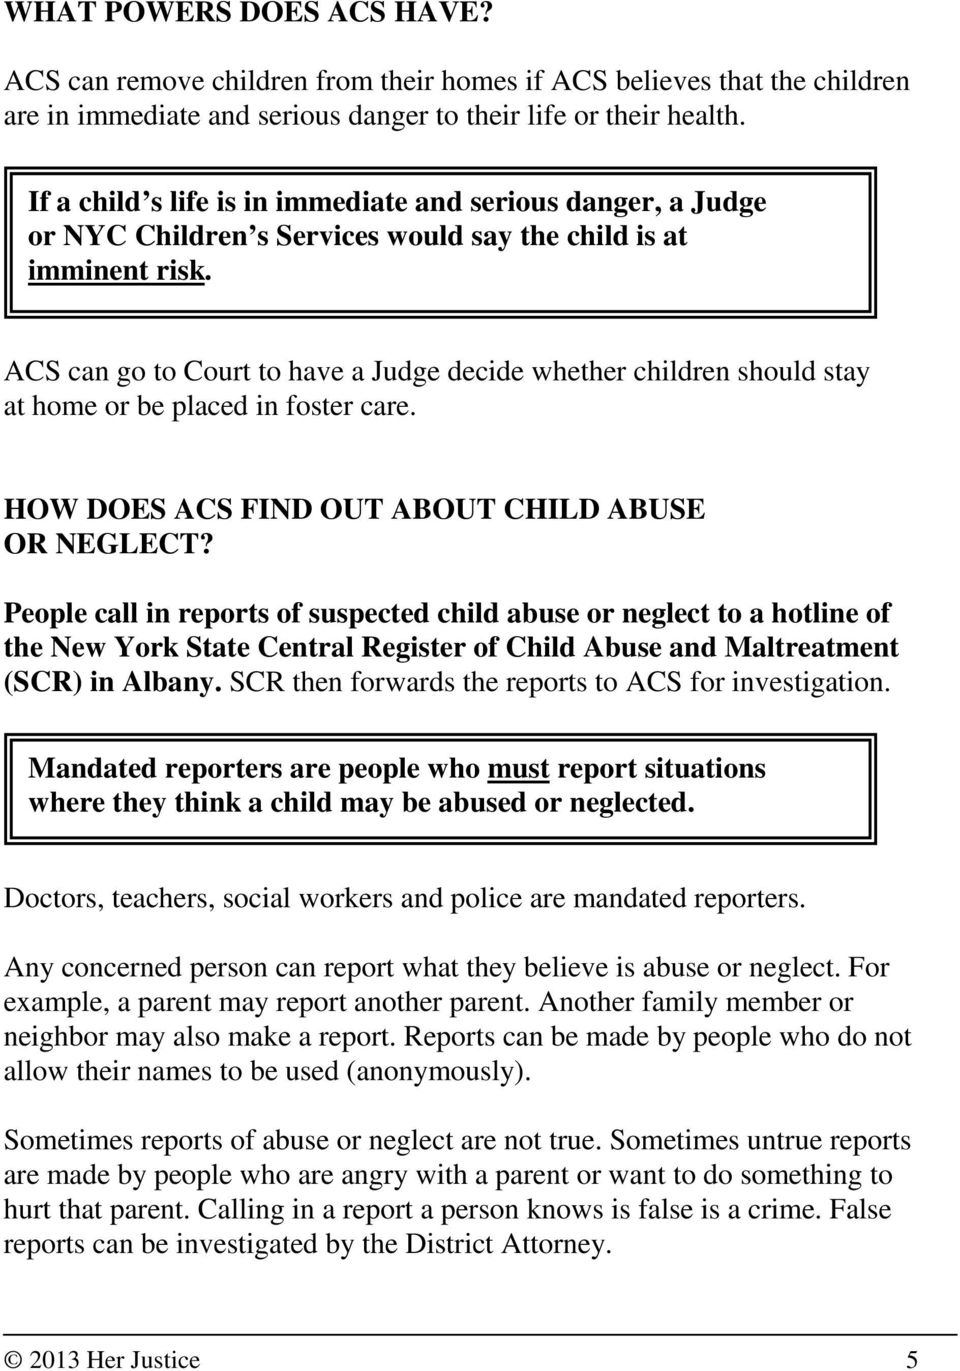 ACS can go to Court to have a Judge decide whether children should stay at home or be placed in foster care. HOW DOES ACS FIND OUT ABOUT CHILD ABUSE OR NEGLECT?